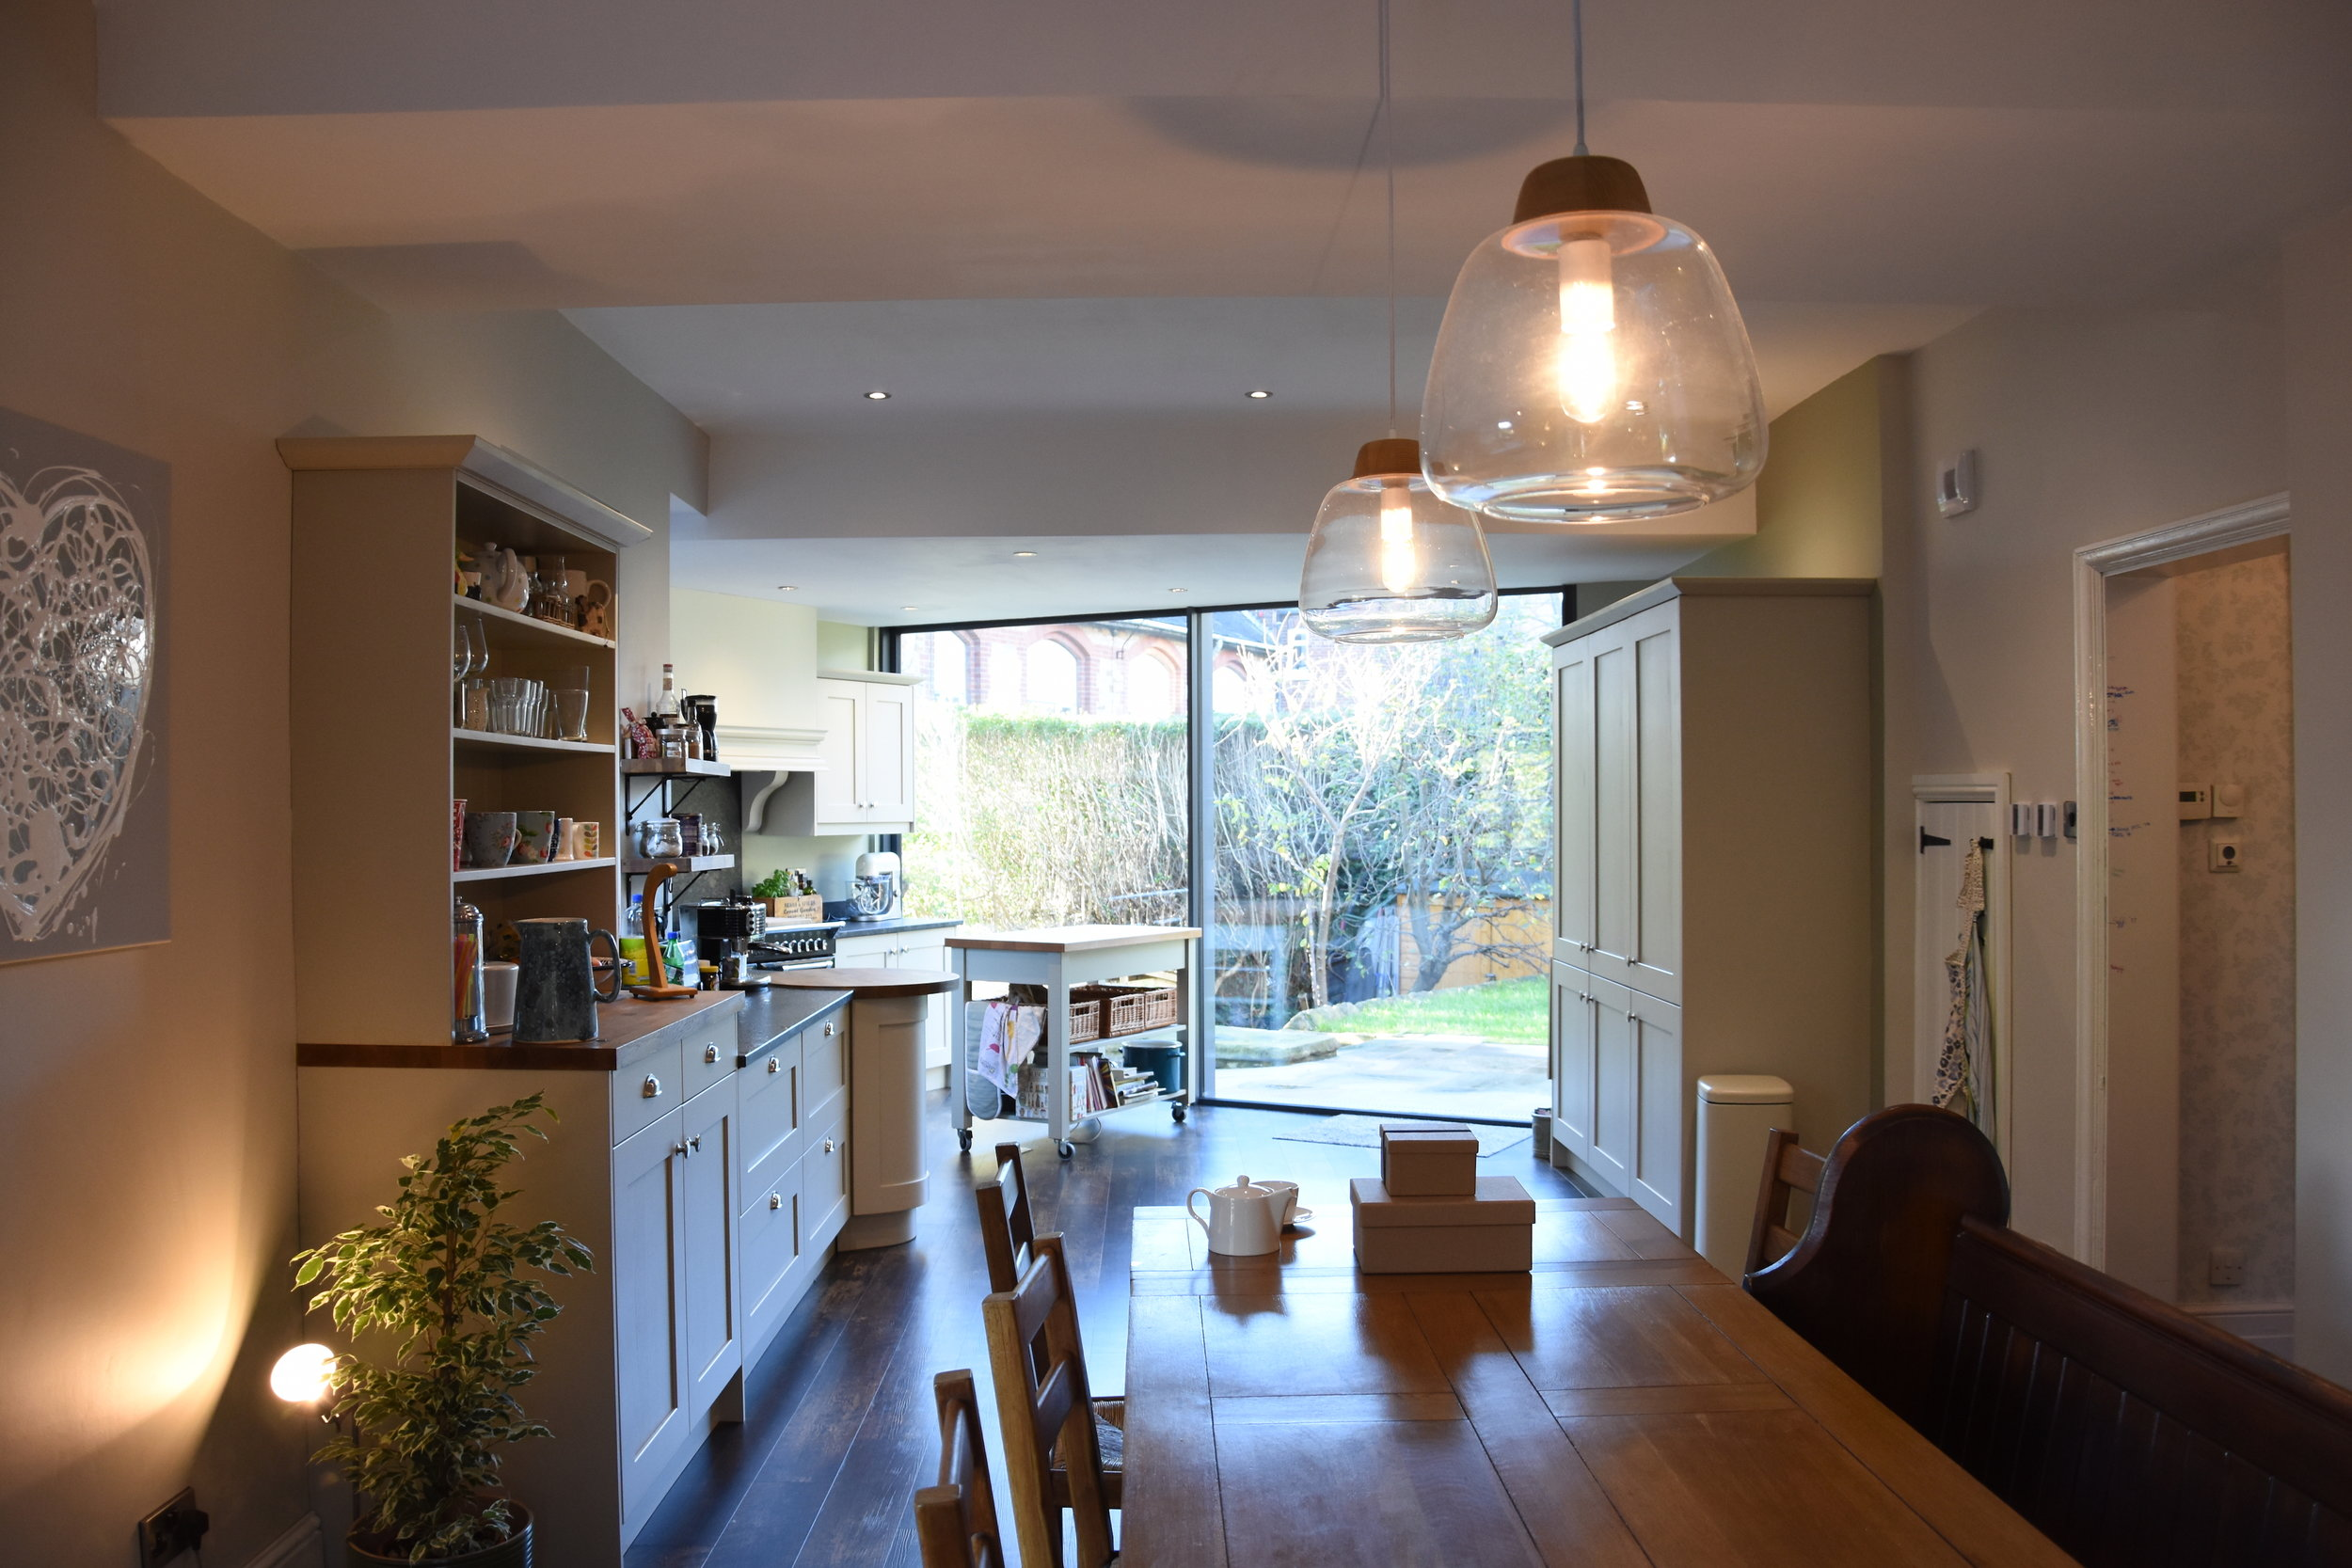 XYPP-0006-House Extension, Hunters Bar, Sheffield -07